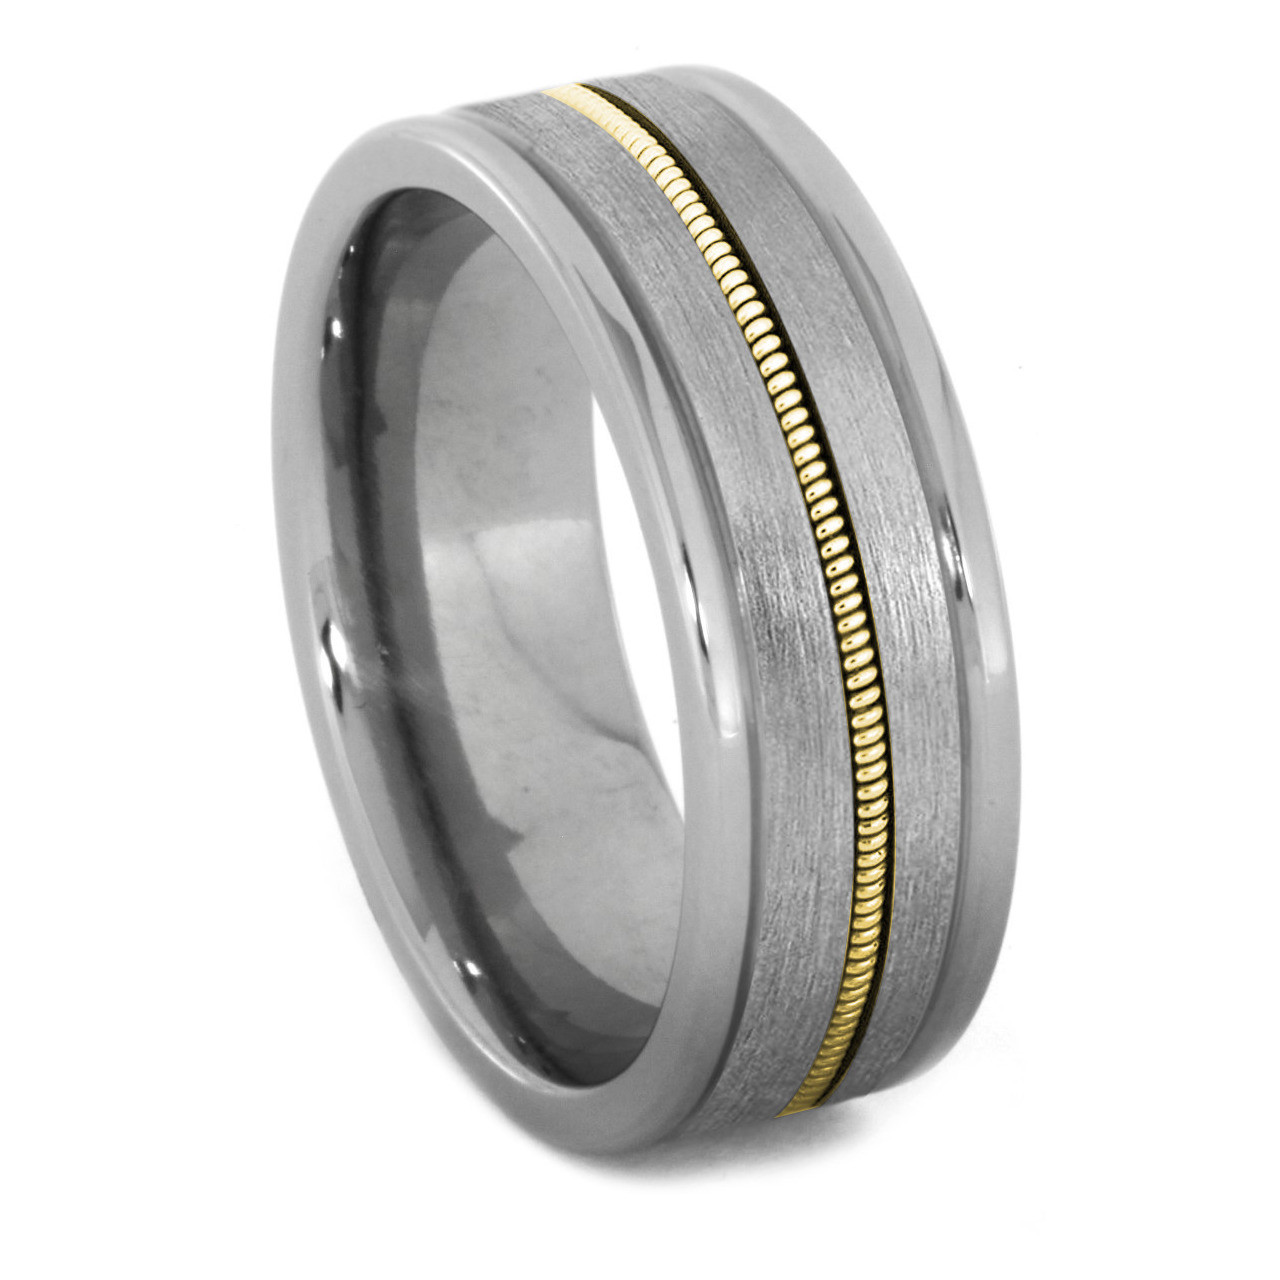 Mens Wedding Bands Titanium.8 Mm Unique Mens Wedding Bands Guitar String Titanium Gs024m